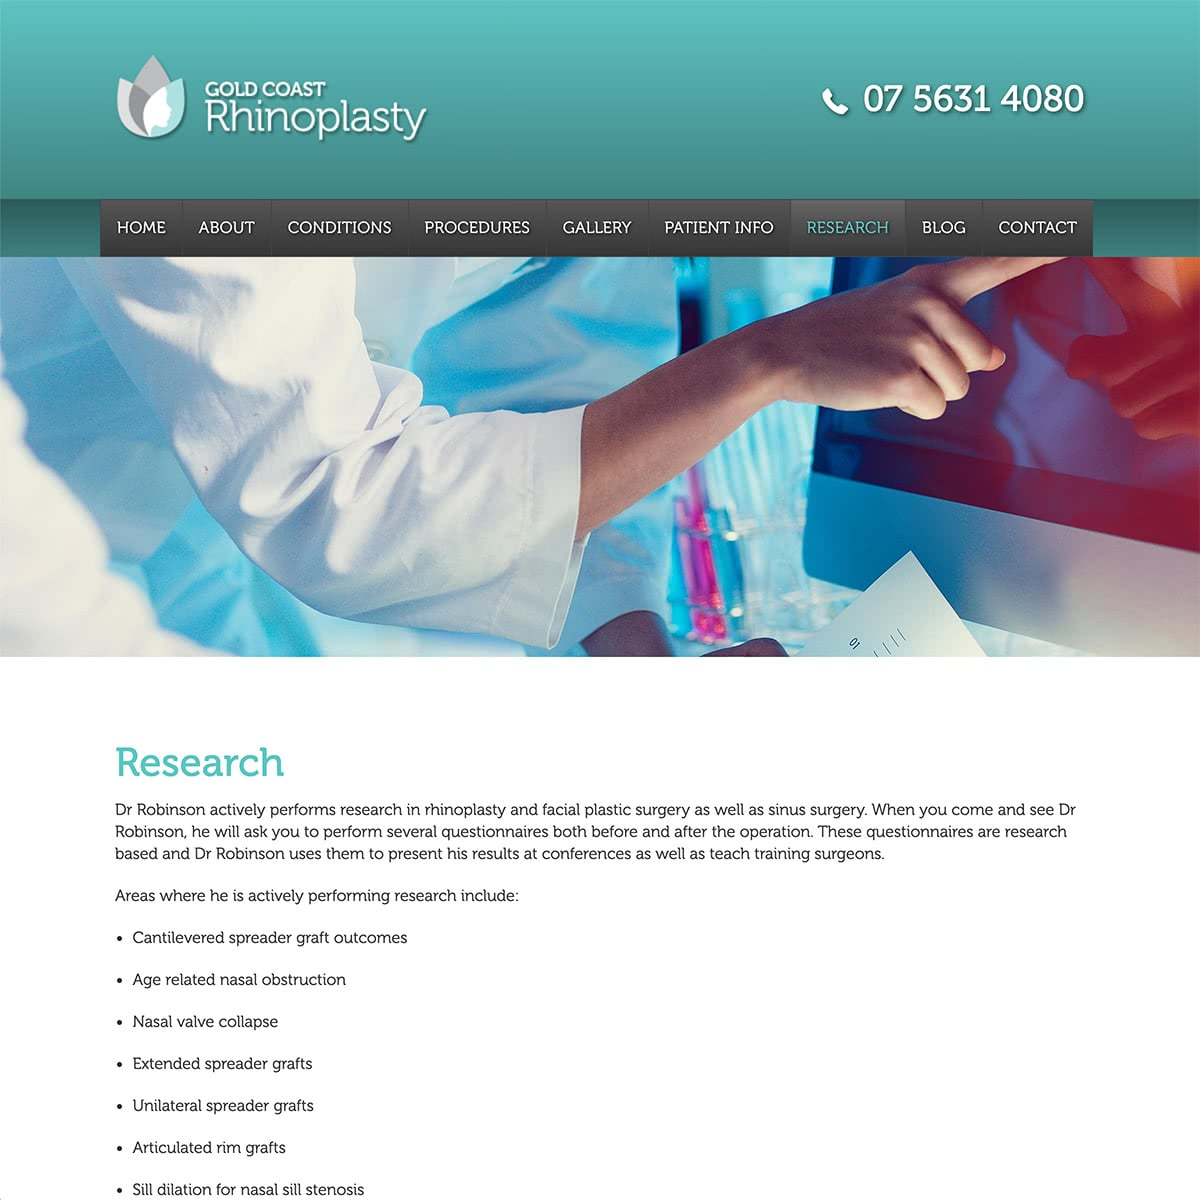 Gold Coast Rhinoplasty - Research